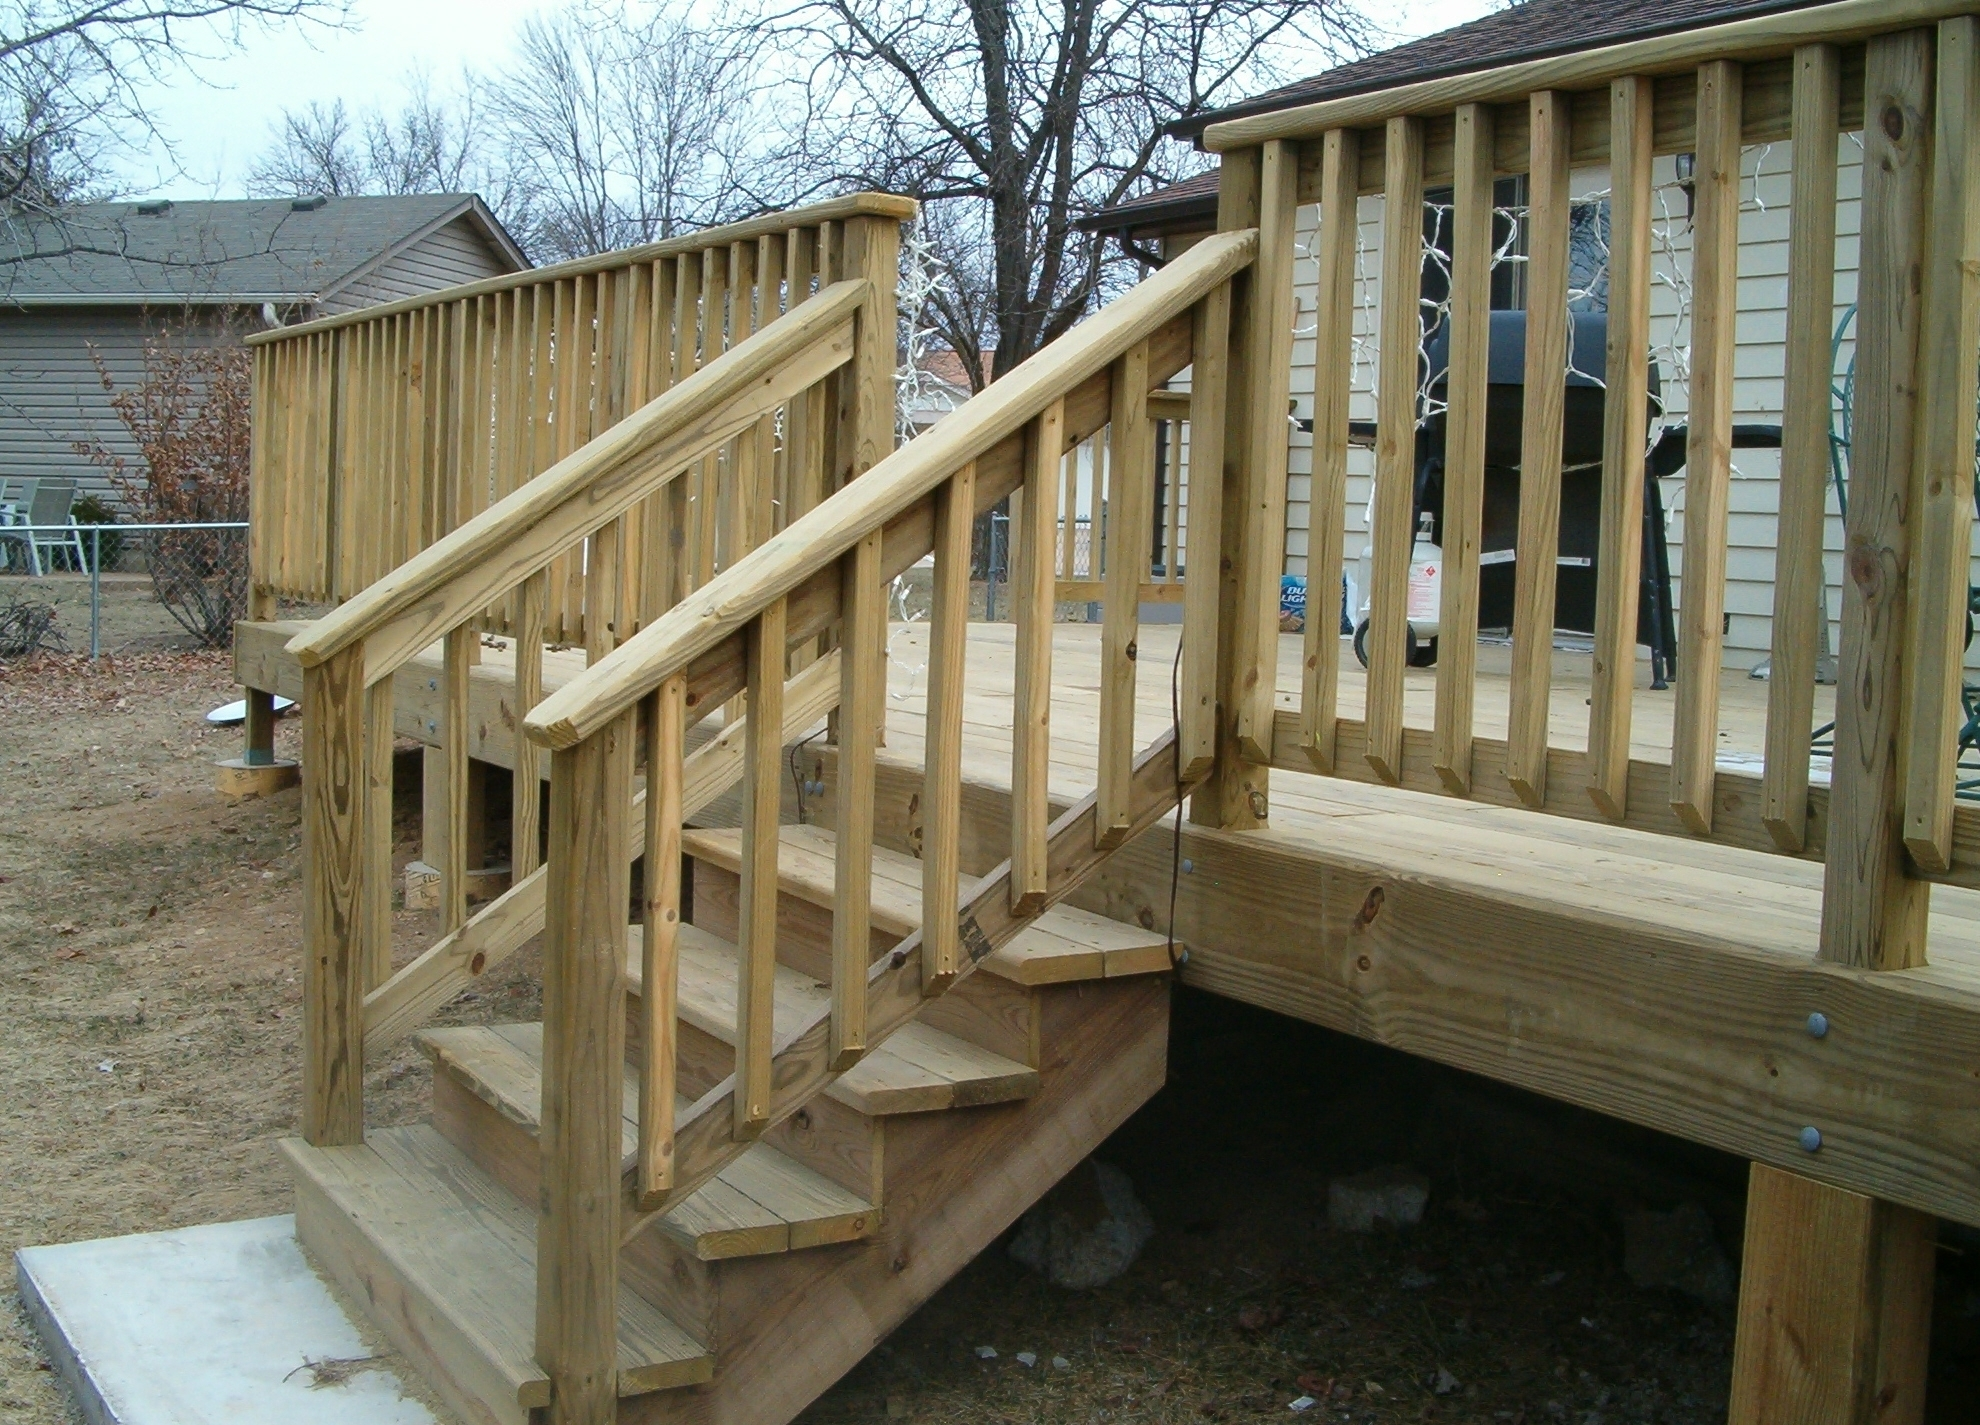 Wooden Handrails For Porch Steps — Randolph Indoor And Outdoor Design | Wooden Handrails For Outdoor Steps | Wall Mounted Wooden | Porch | Outdoor Garden Path | Outdoor Decking | Small